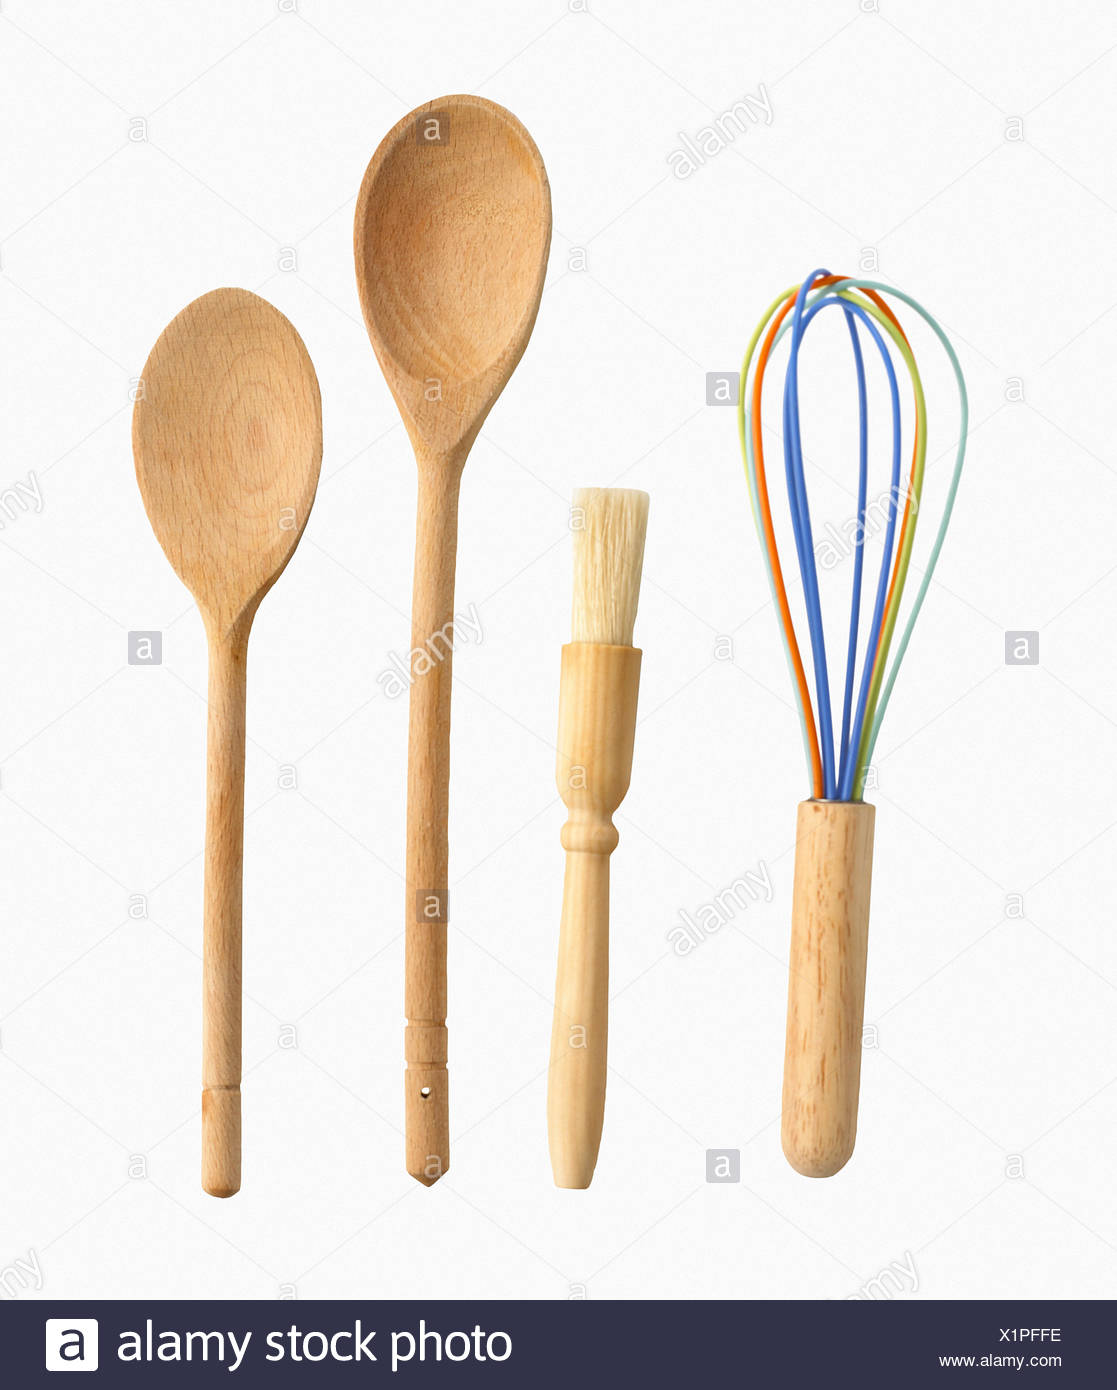 Whisk, pastry brush, wooden spoons - Stock Image